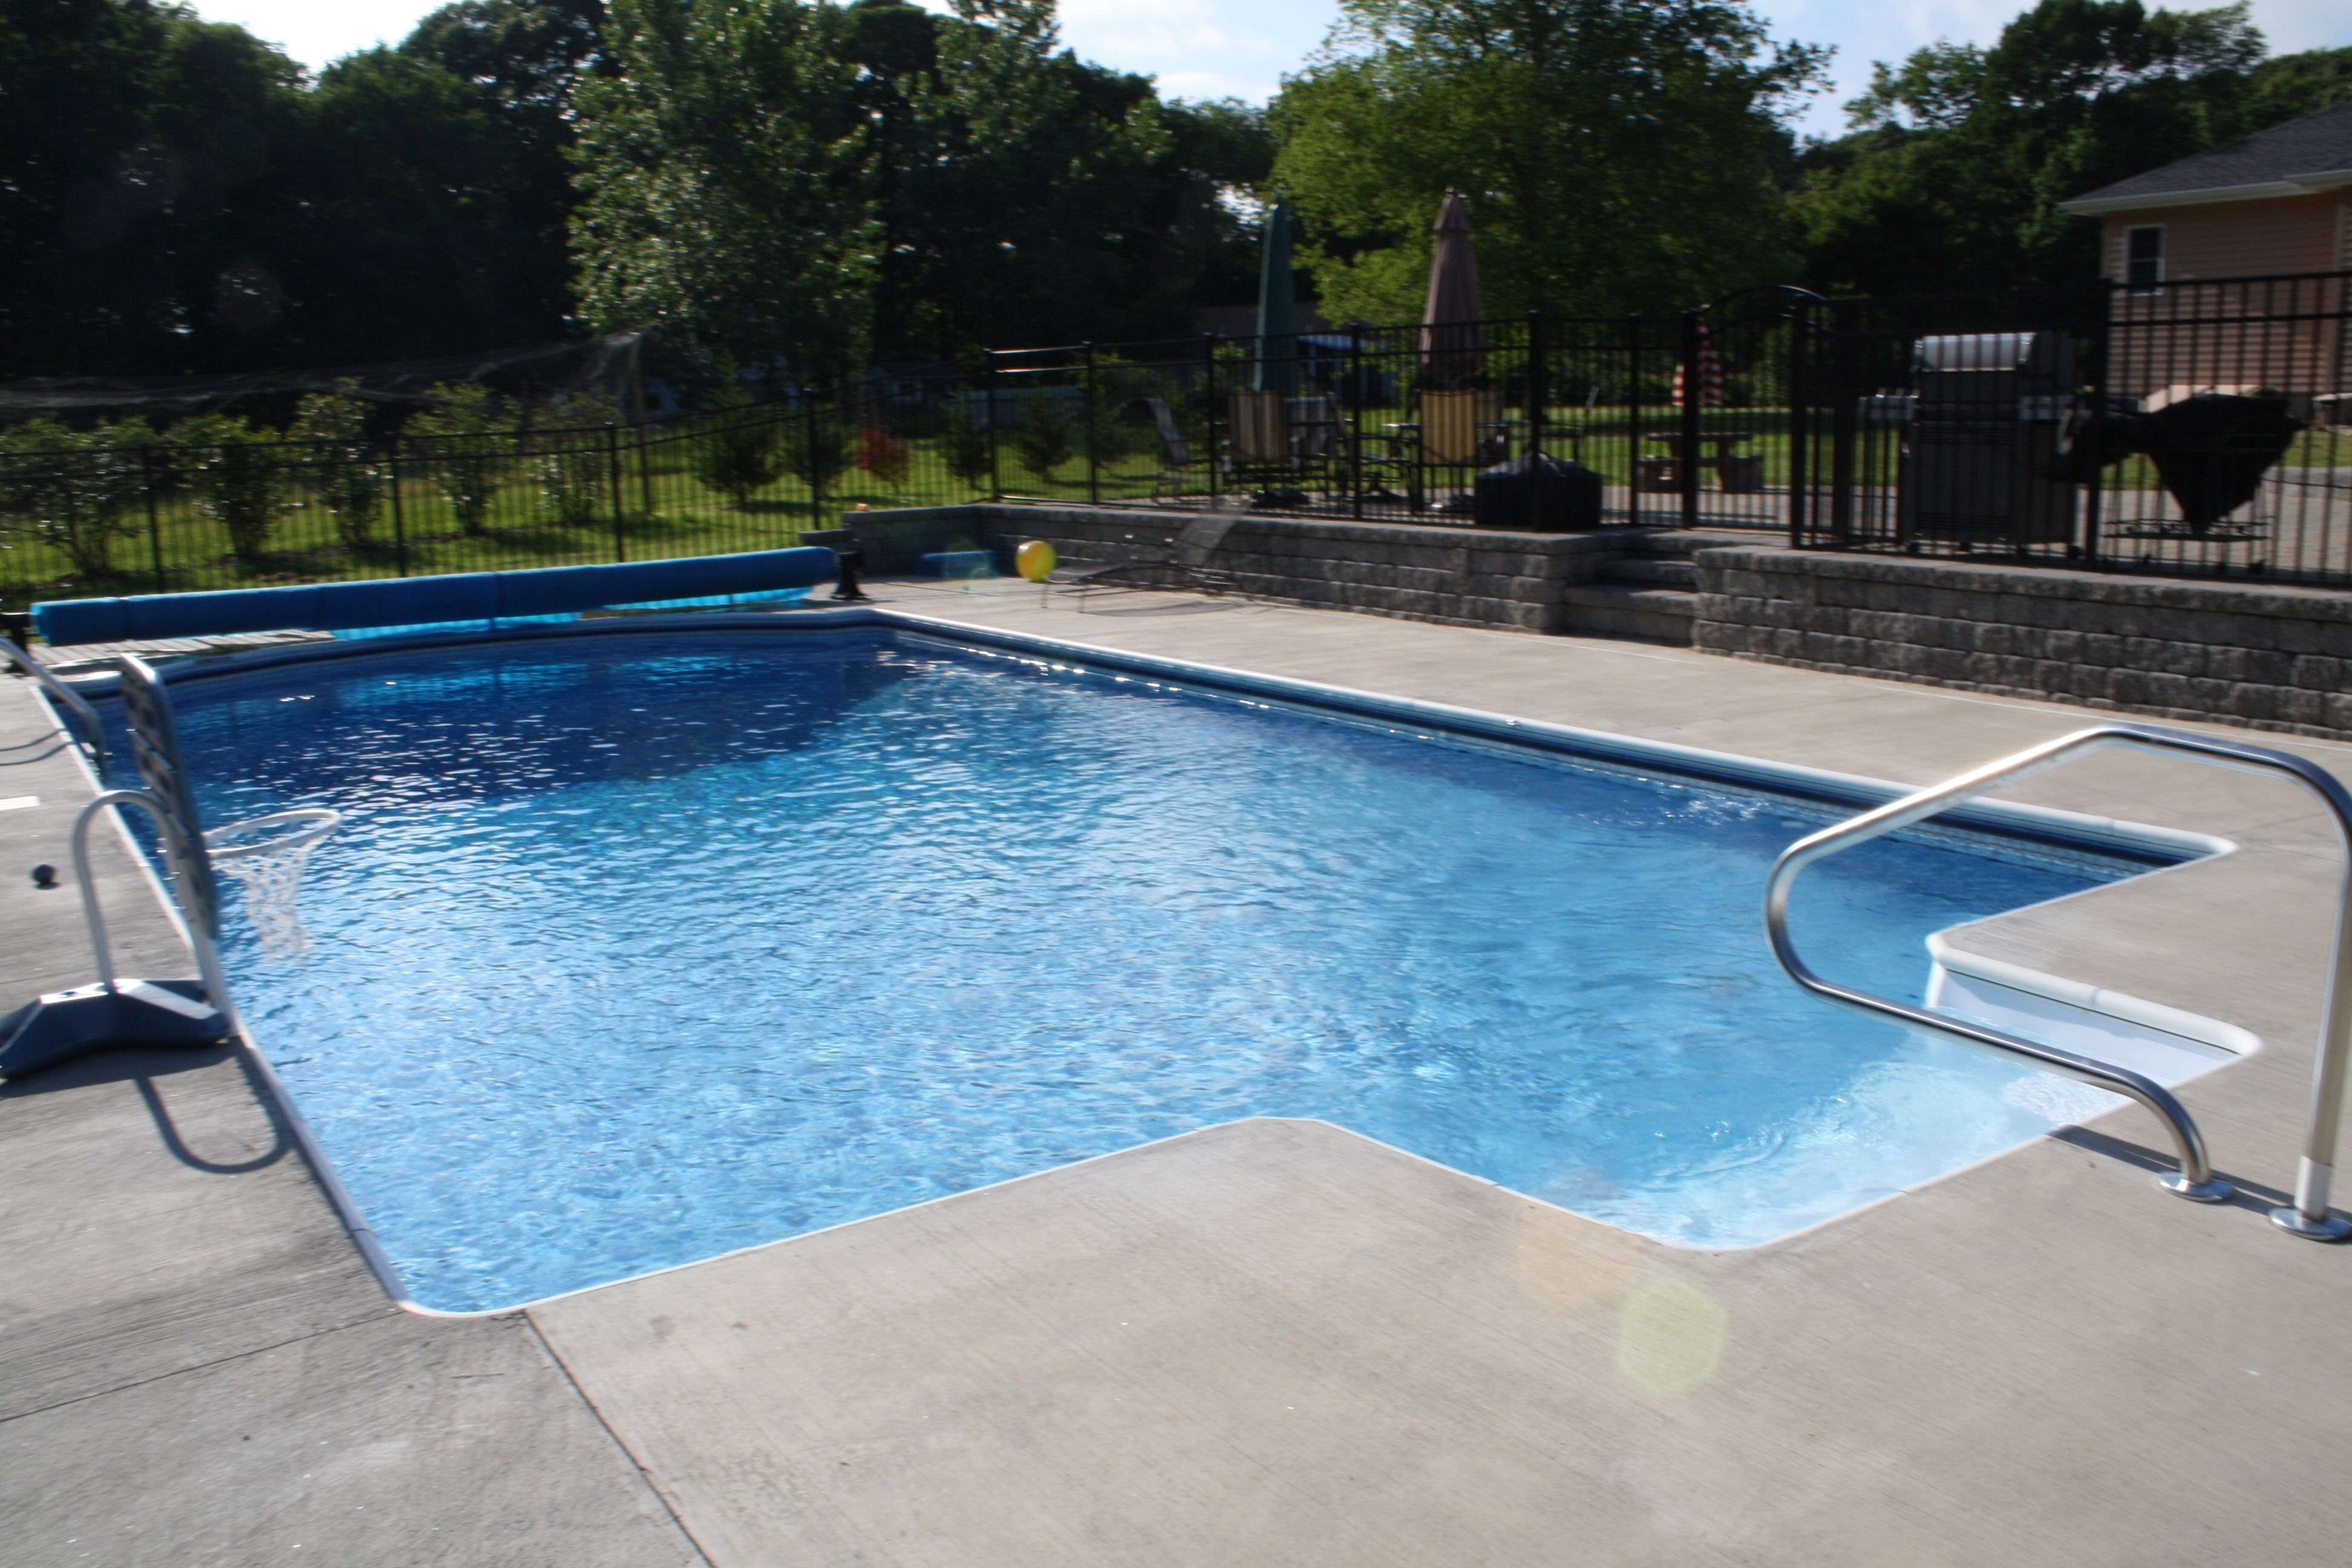 Pool Deck Ideas For Inground Pools composite style decks can meet the needs and requirements of any pool owner do you want the above deck made out of wood and all the area surrounding the Inground Pools With Patios Google Search